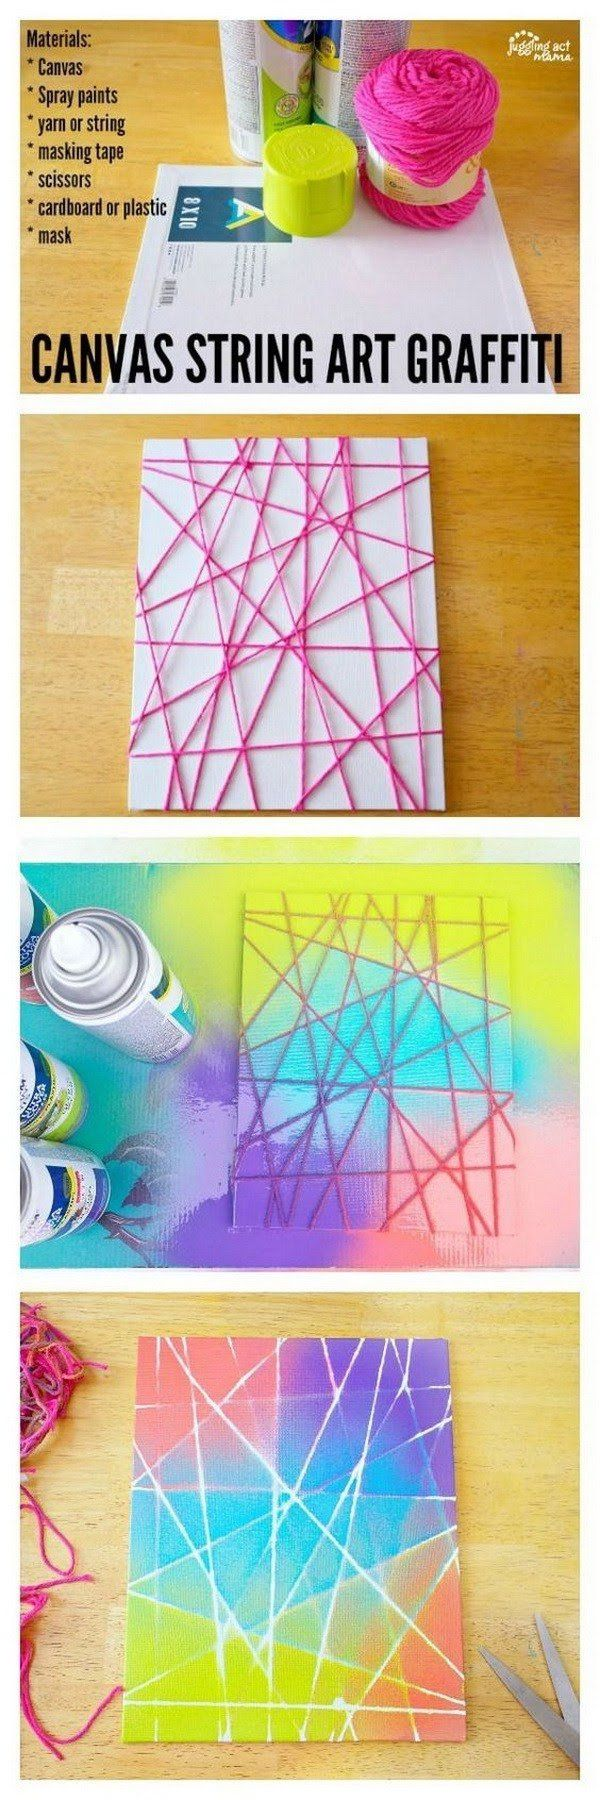 Best 25+ Canvas wall collage ideas on Pinterest